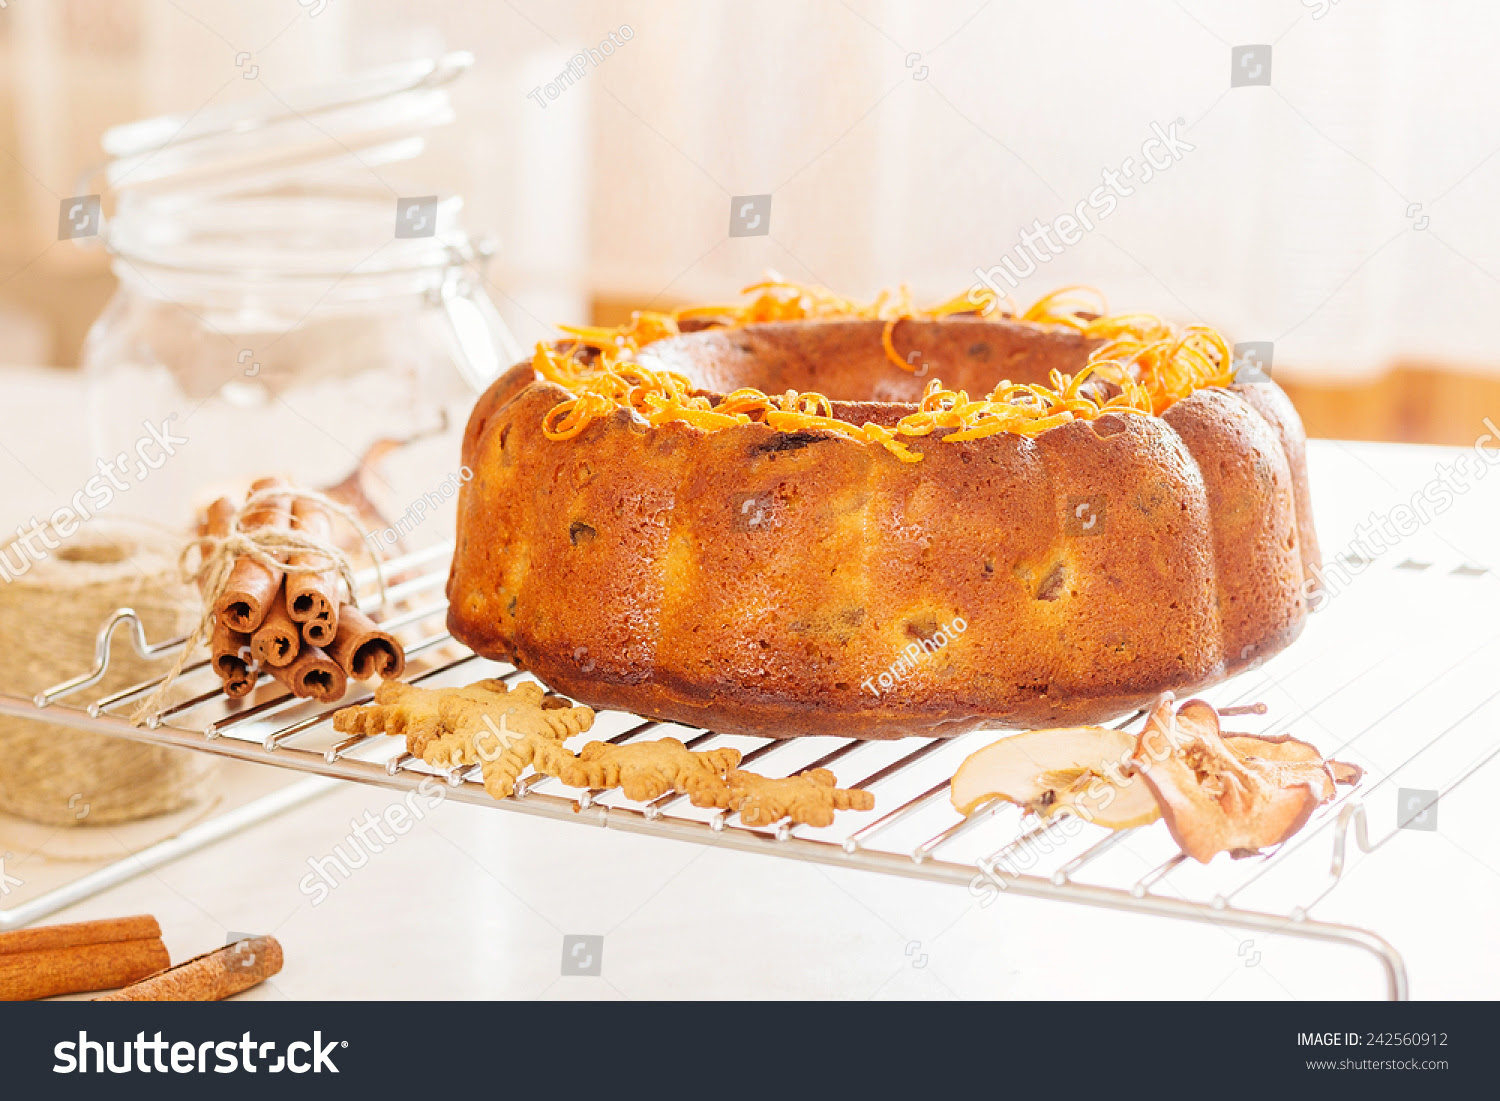 http://www.shutterstock.com/pic-242560912/stock-photo-bundt-cake-with-citrus-peel.html